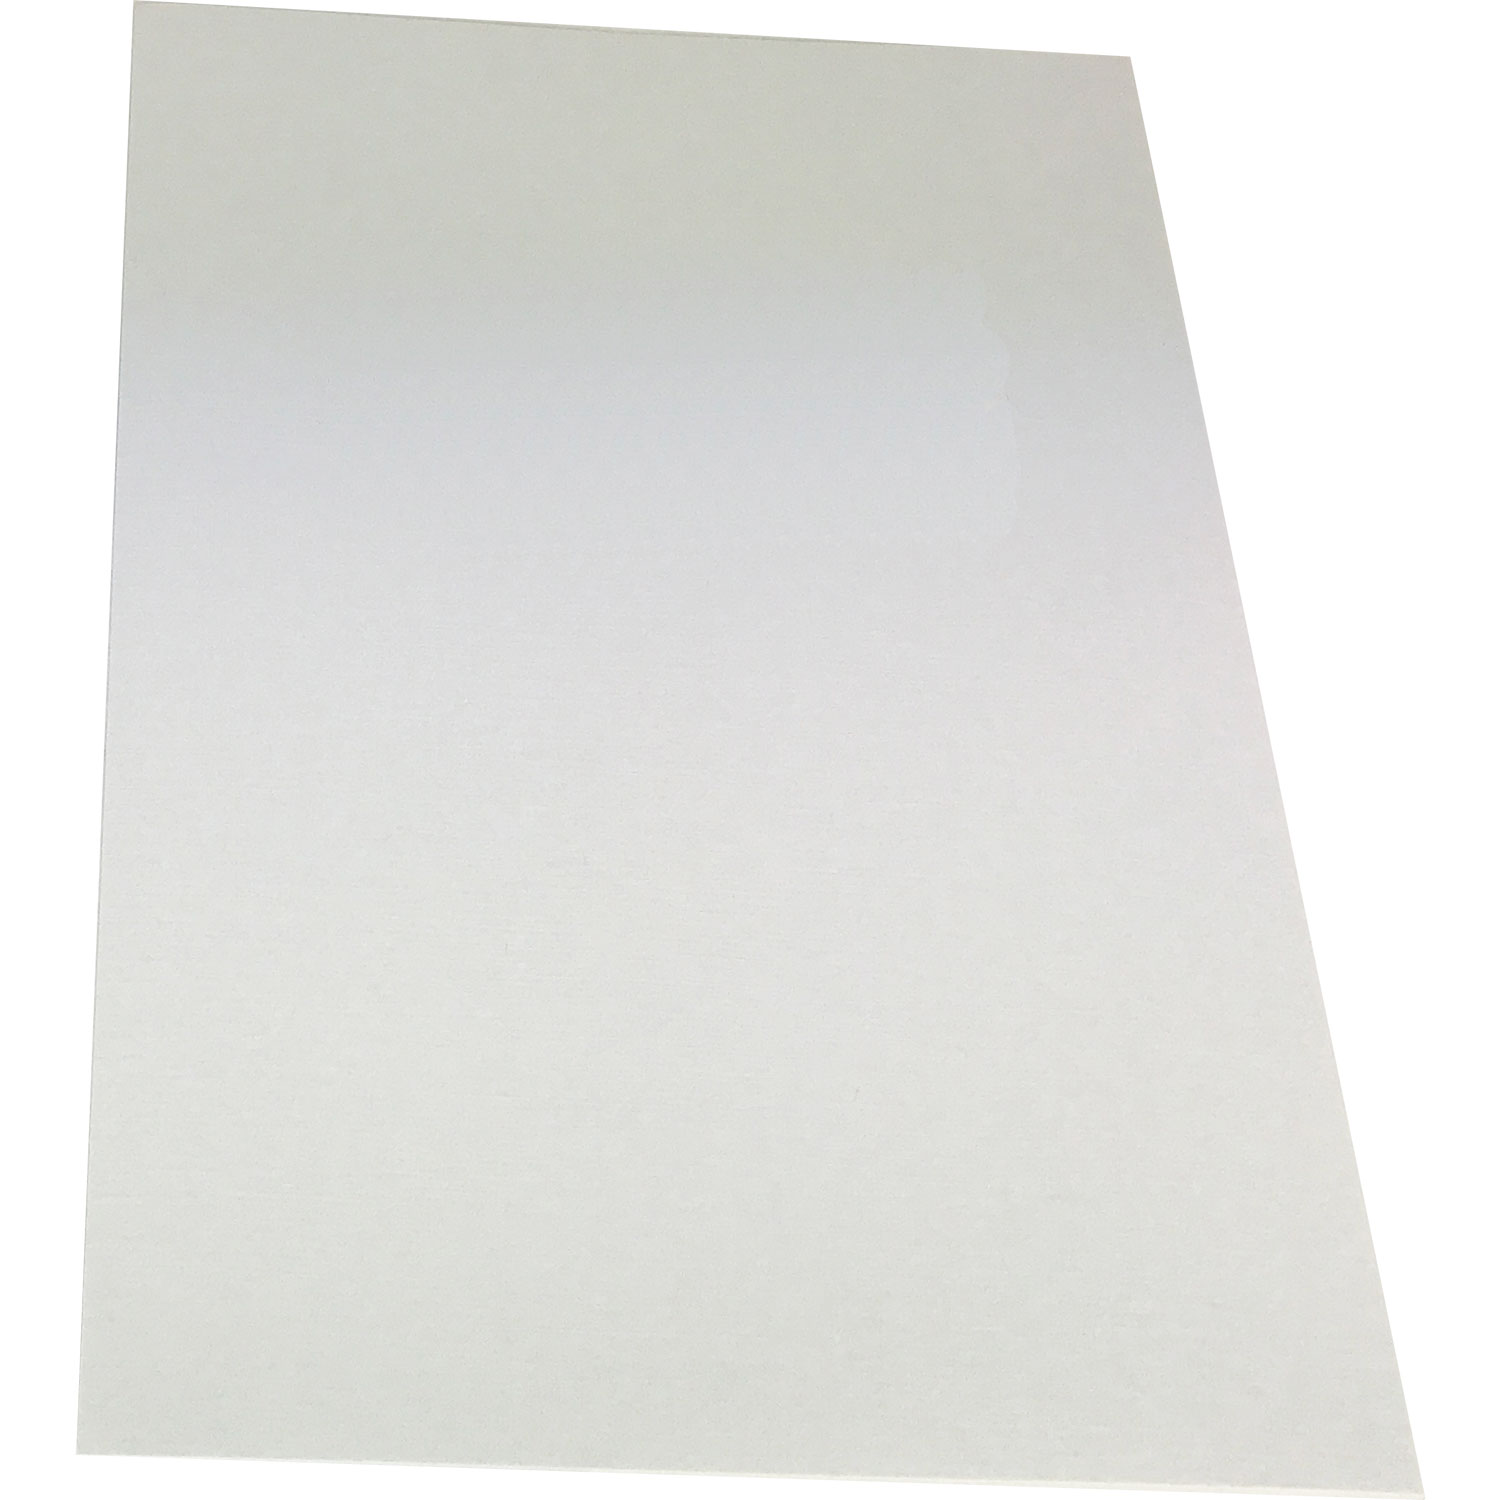 Leitz A4 Plain Linen White Binding Cover Boards (500)